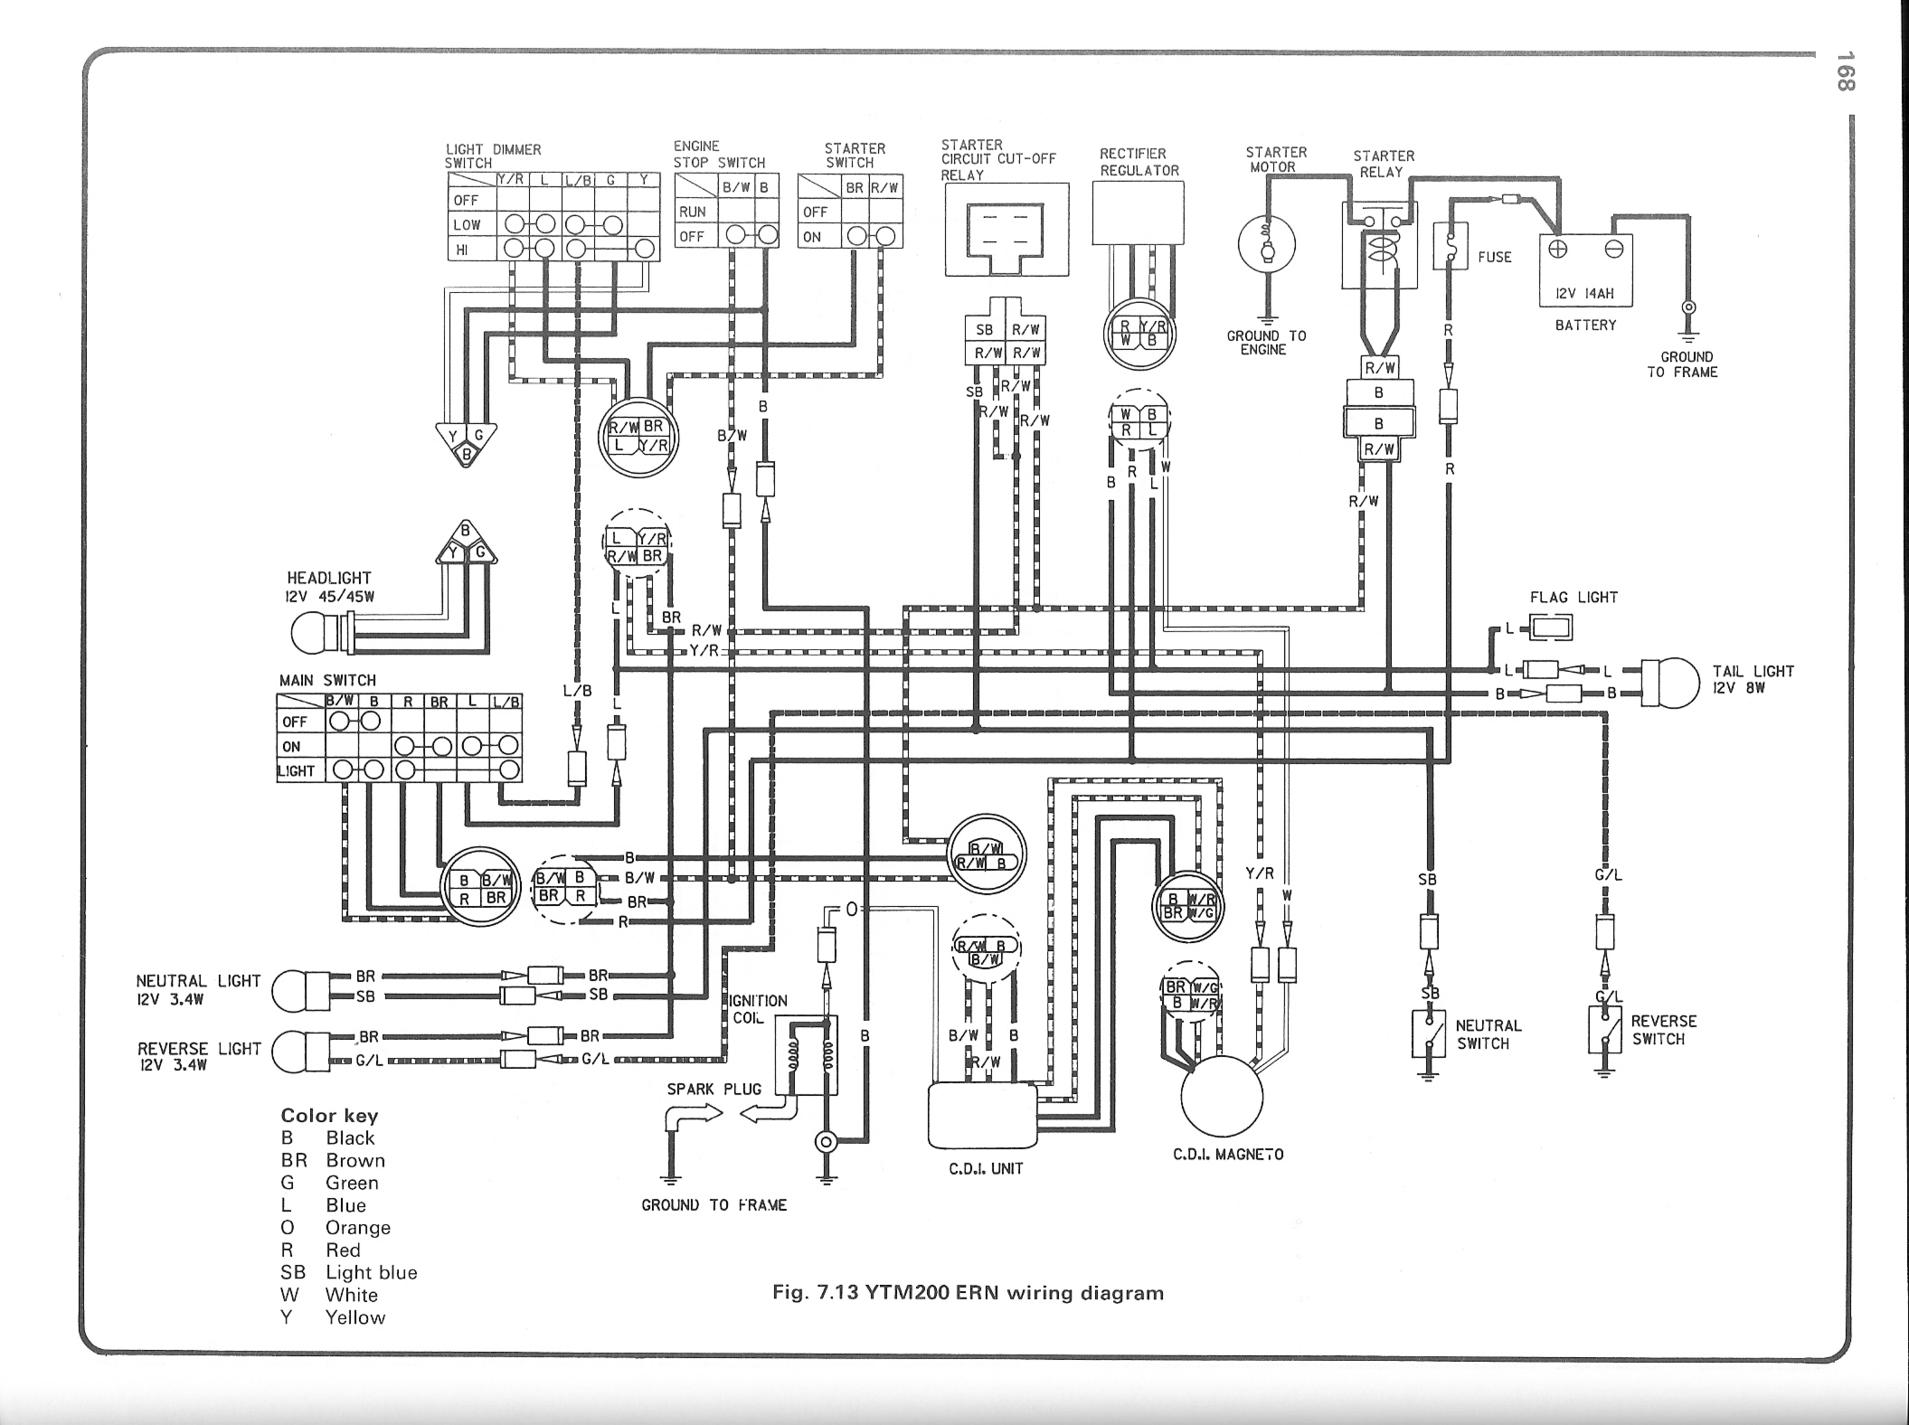 yamaha grizzly 125 wiring diagram yamaha grizzly 400 wiring diagram 3wheeler world - yamaha ytm200ern three-wheeler wiring diagram